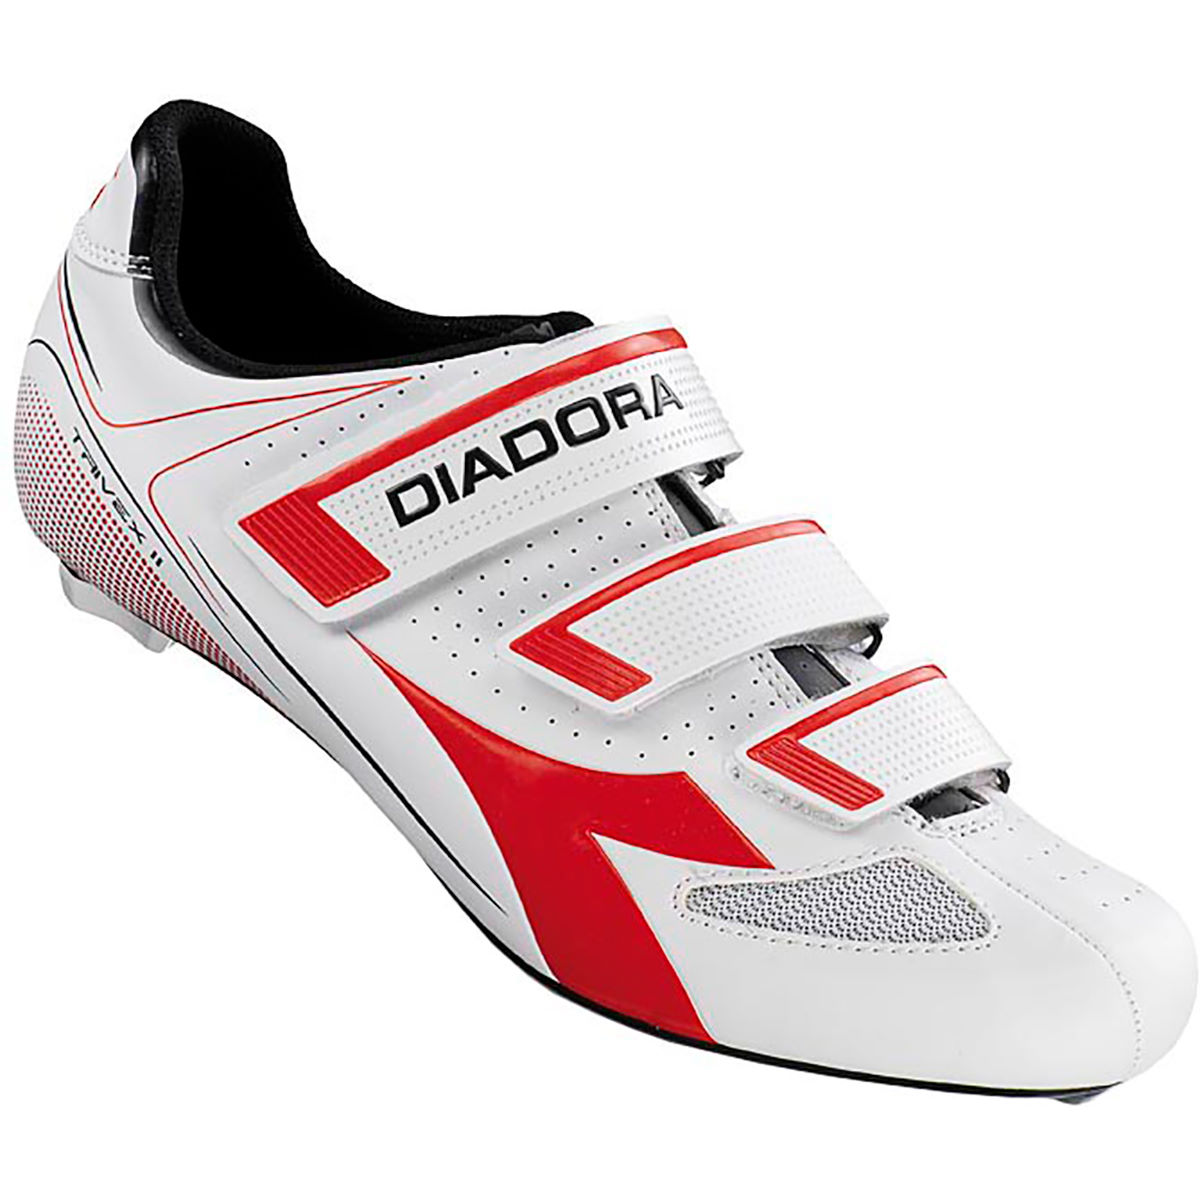 Diadora Trivex II SPD-SL Road Bike Shoes